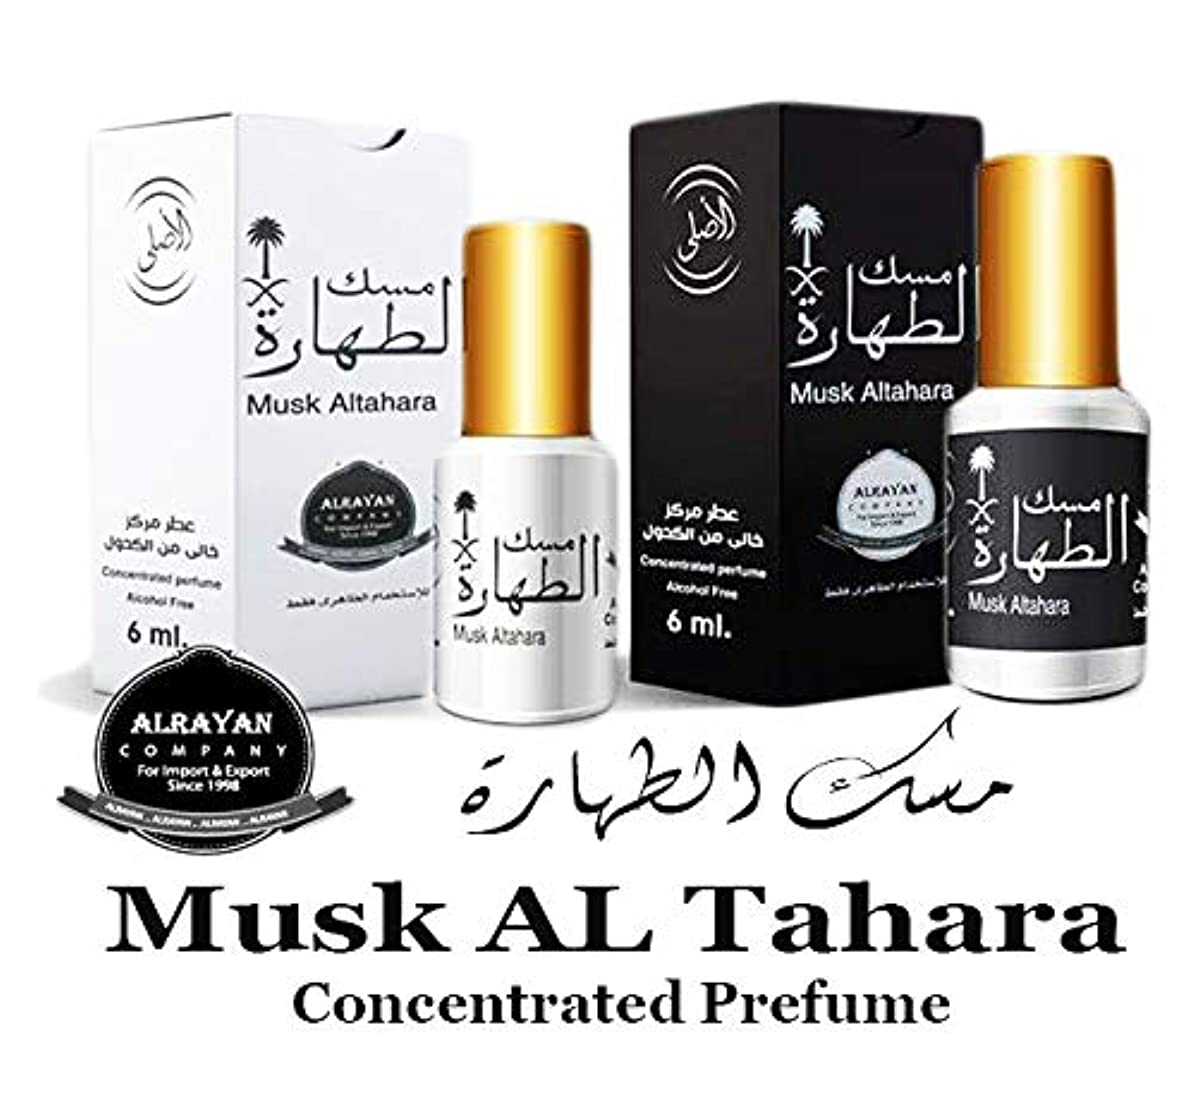 階下ズボンユニークなMusk Al tahara Pure Saudi Altahara Perfume White & Black 12 ml Oil Incense Scented Unisex Body Fragrance Alcohol Free